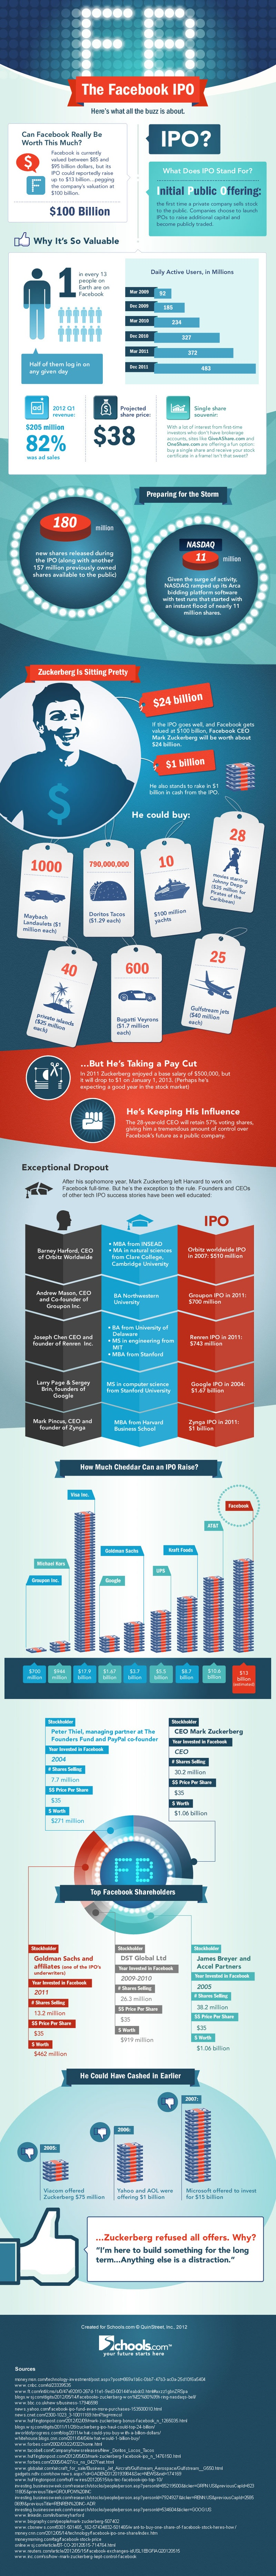 The Facebook Ipo - iNFOGRAPHiCs MANiA